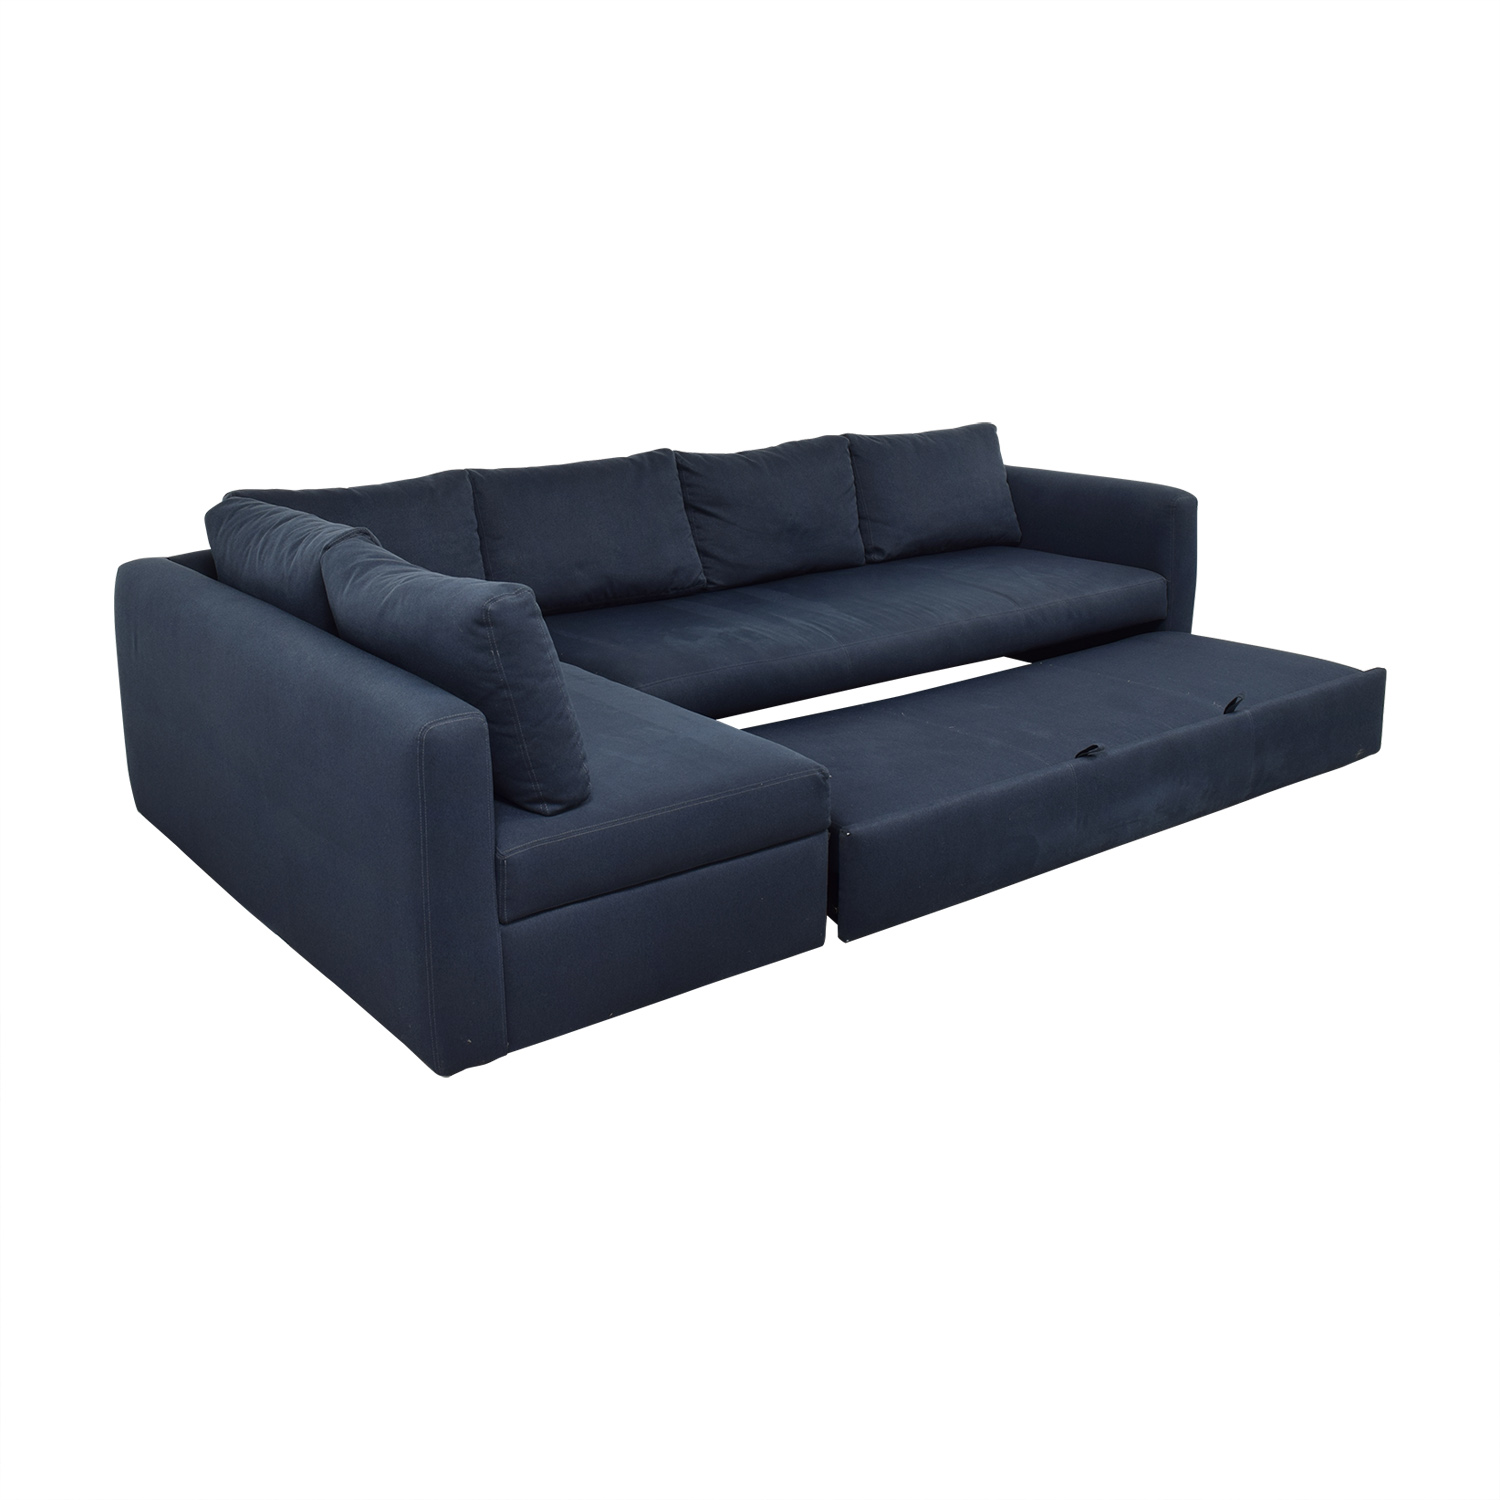 76 off room board room board sectional sleeper sofa sofas